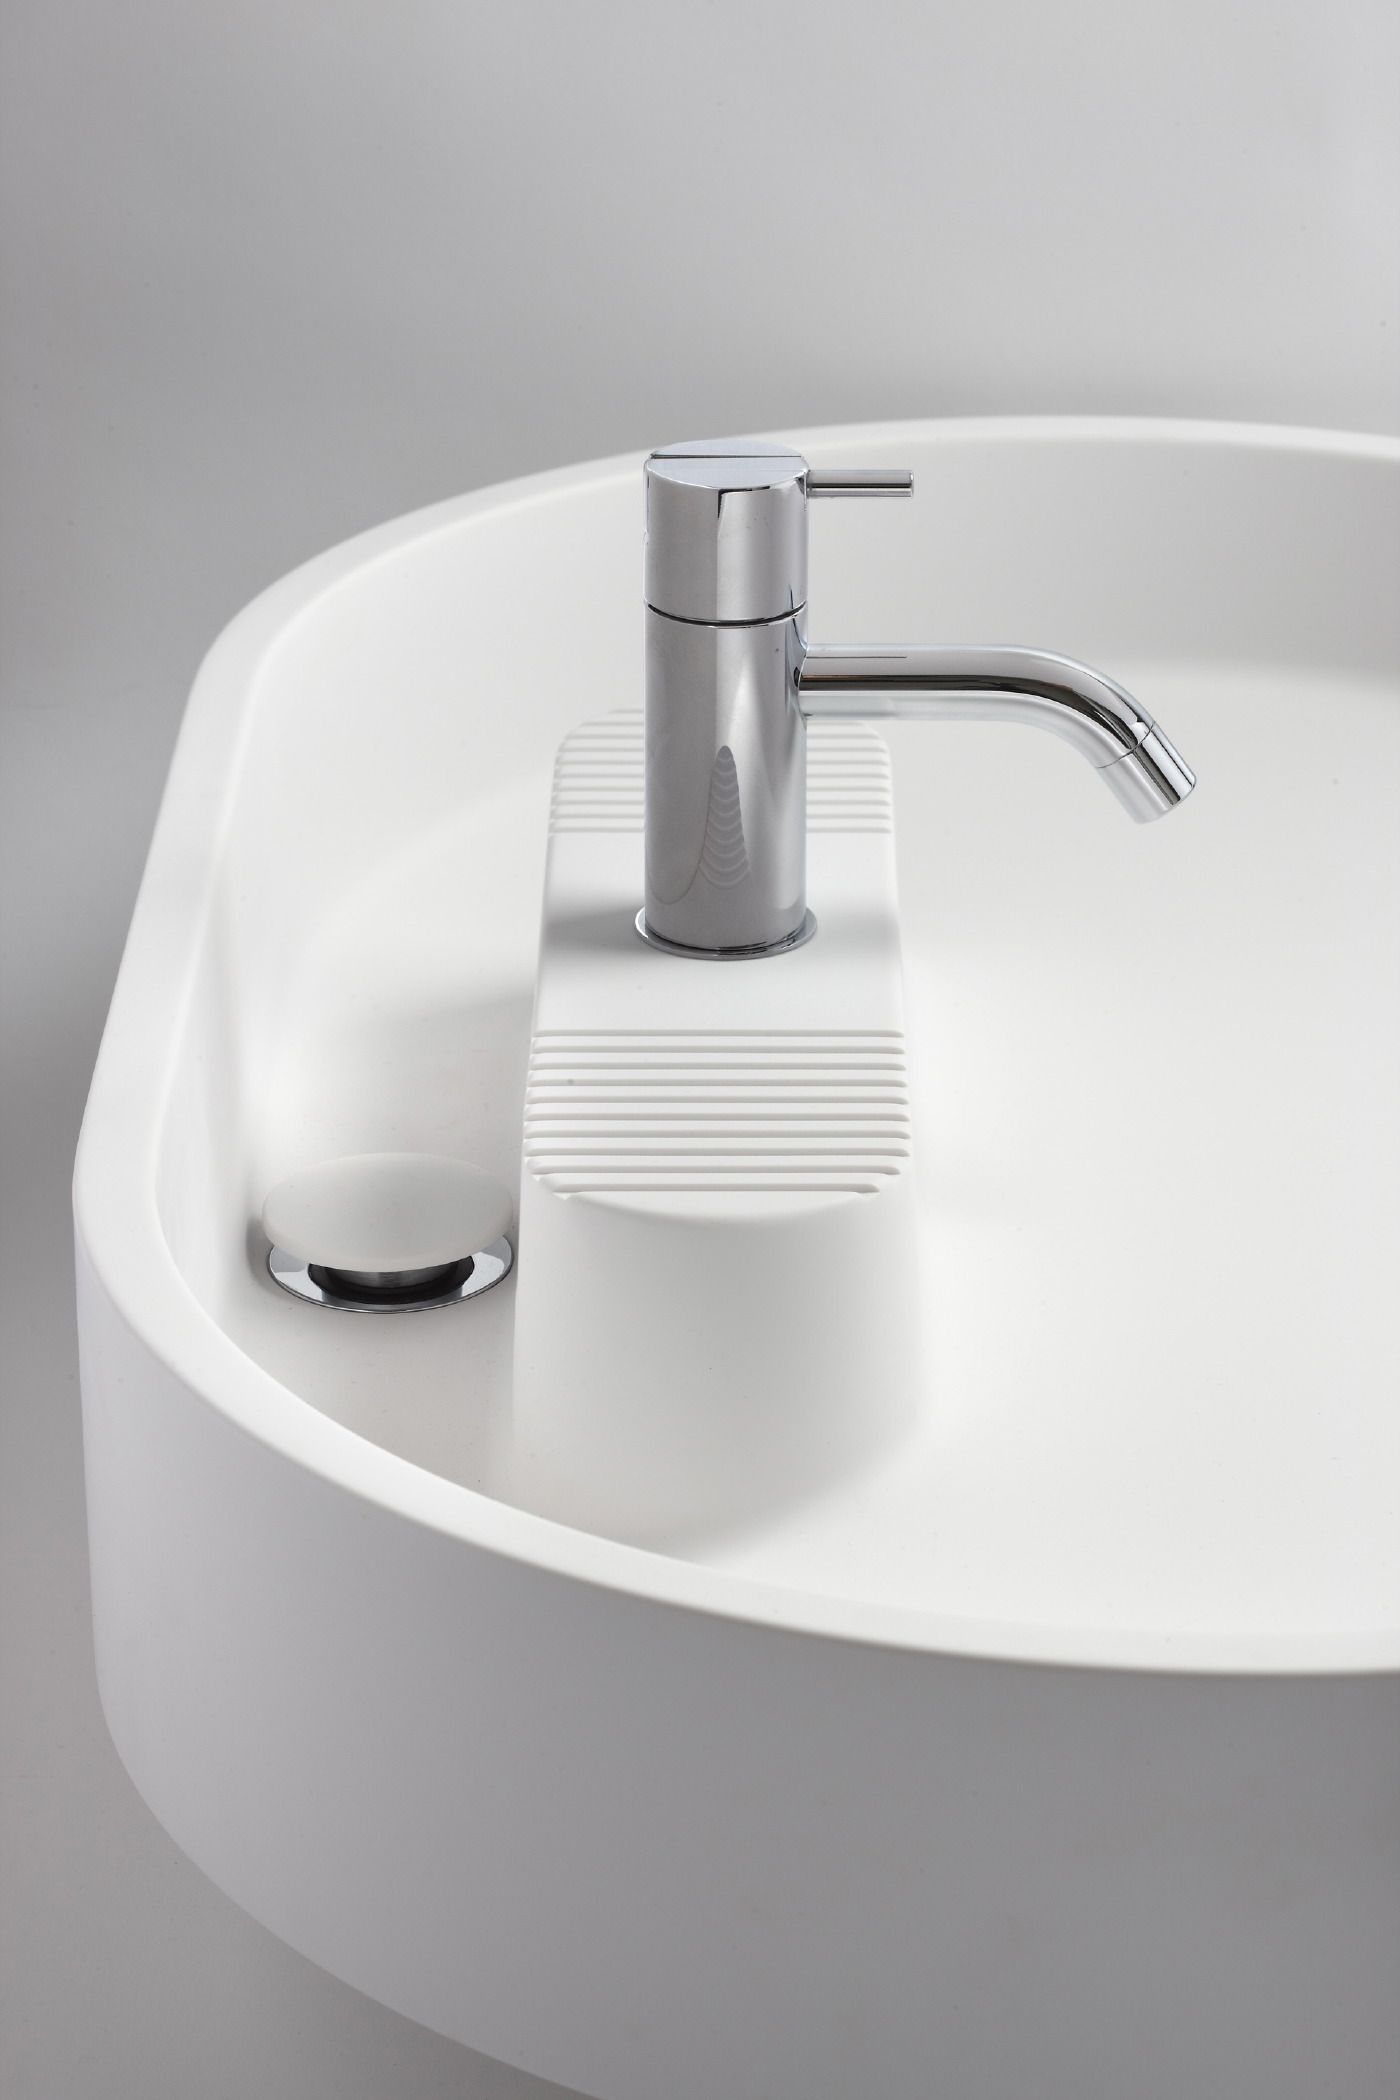 by pin black a faucet hansa ametis wall in architectural oppizzi finish davide lavatory designed faucets the mounted striking